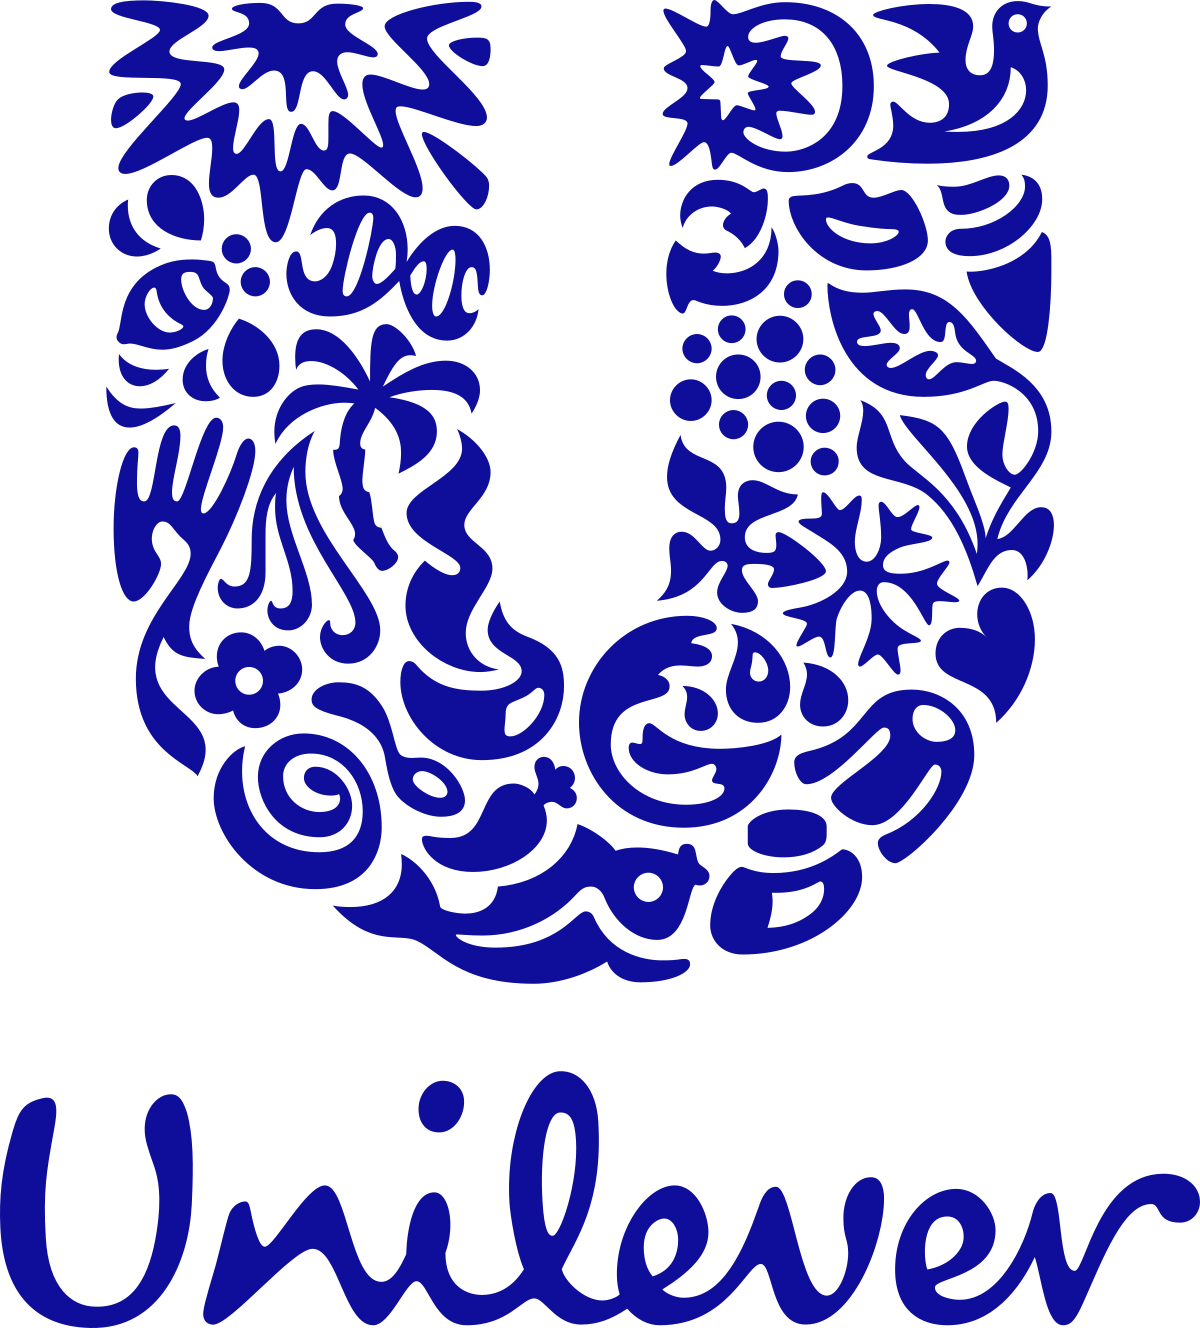 Unilever transparent logo